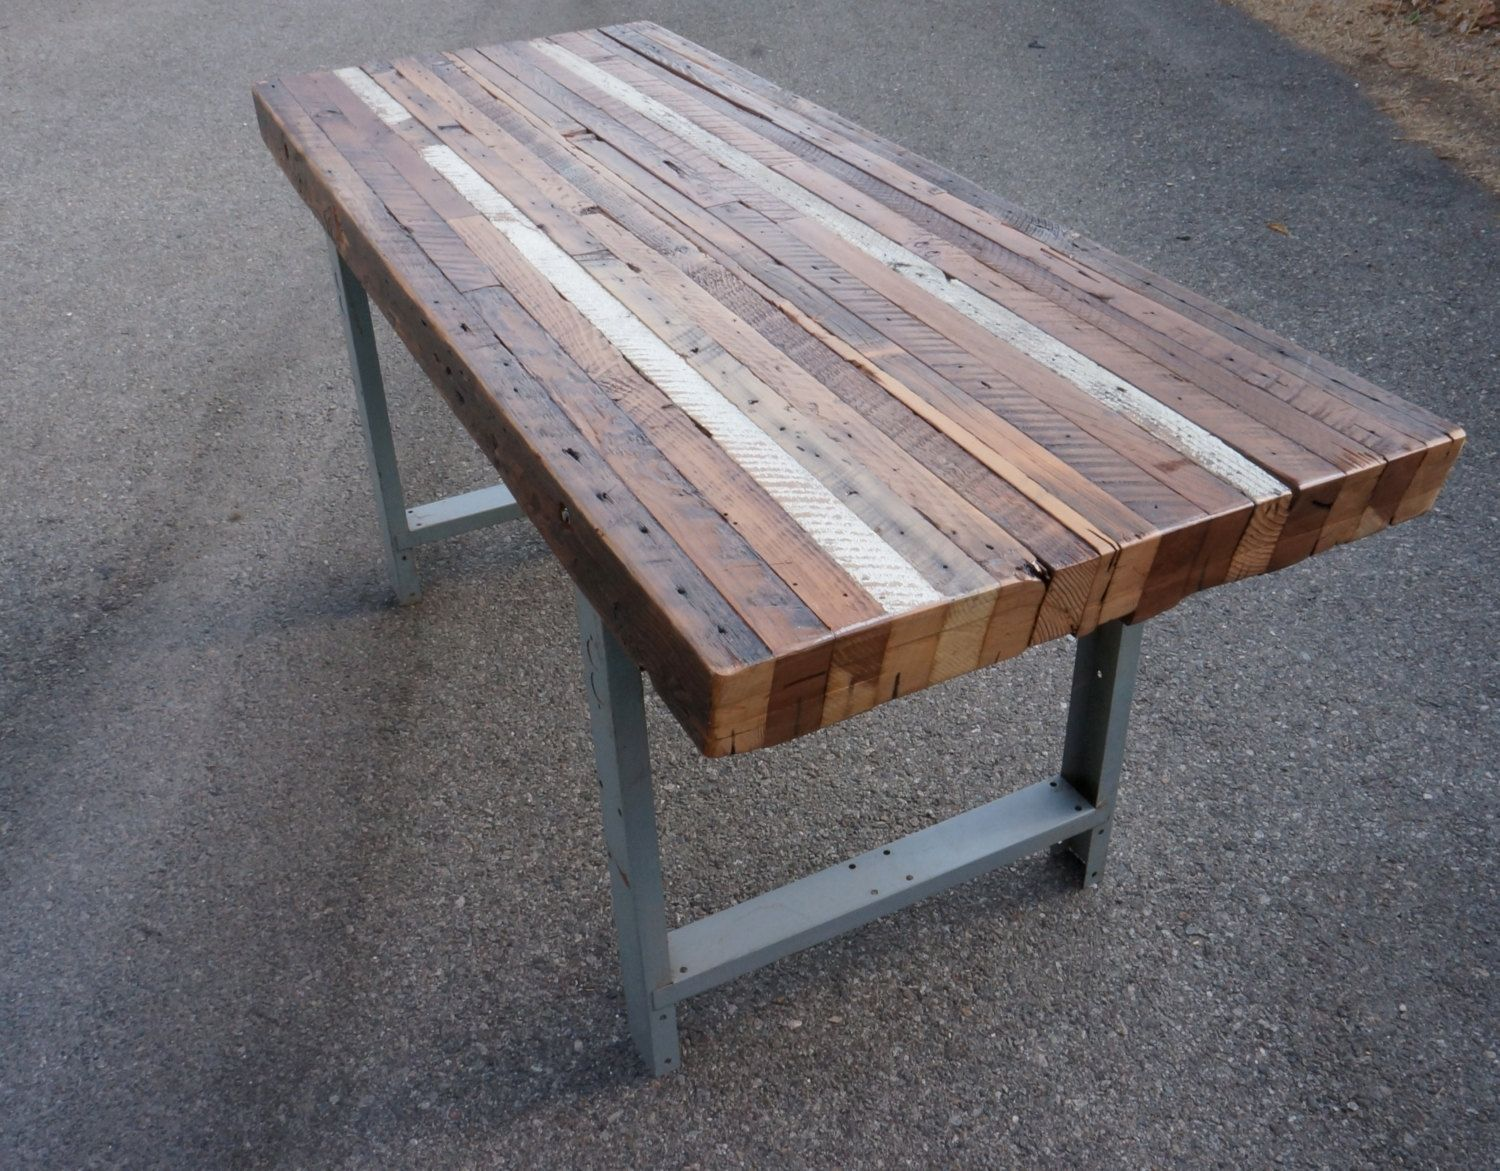 Handmade Custom Outdoor Indoor Rustic Industrial Reclaimed Wood Dining Table